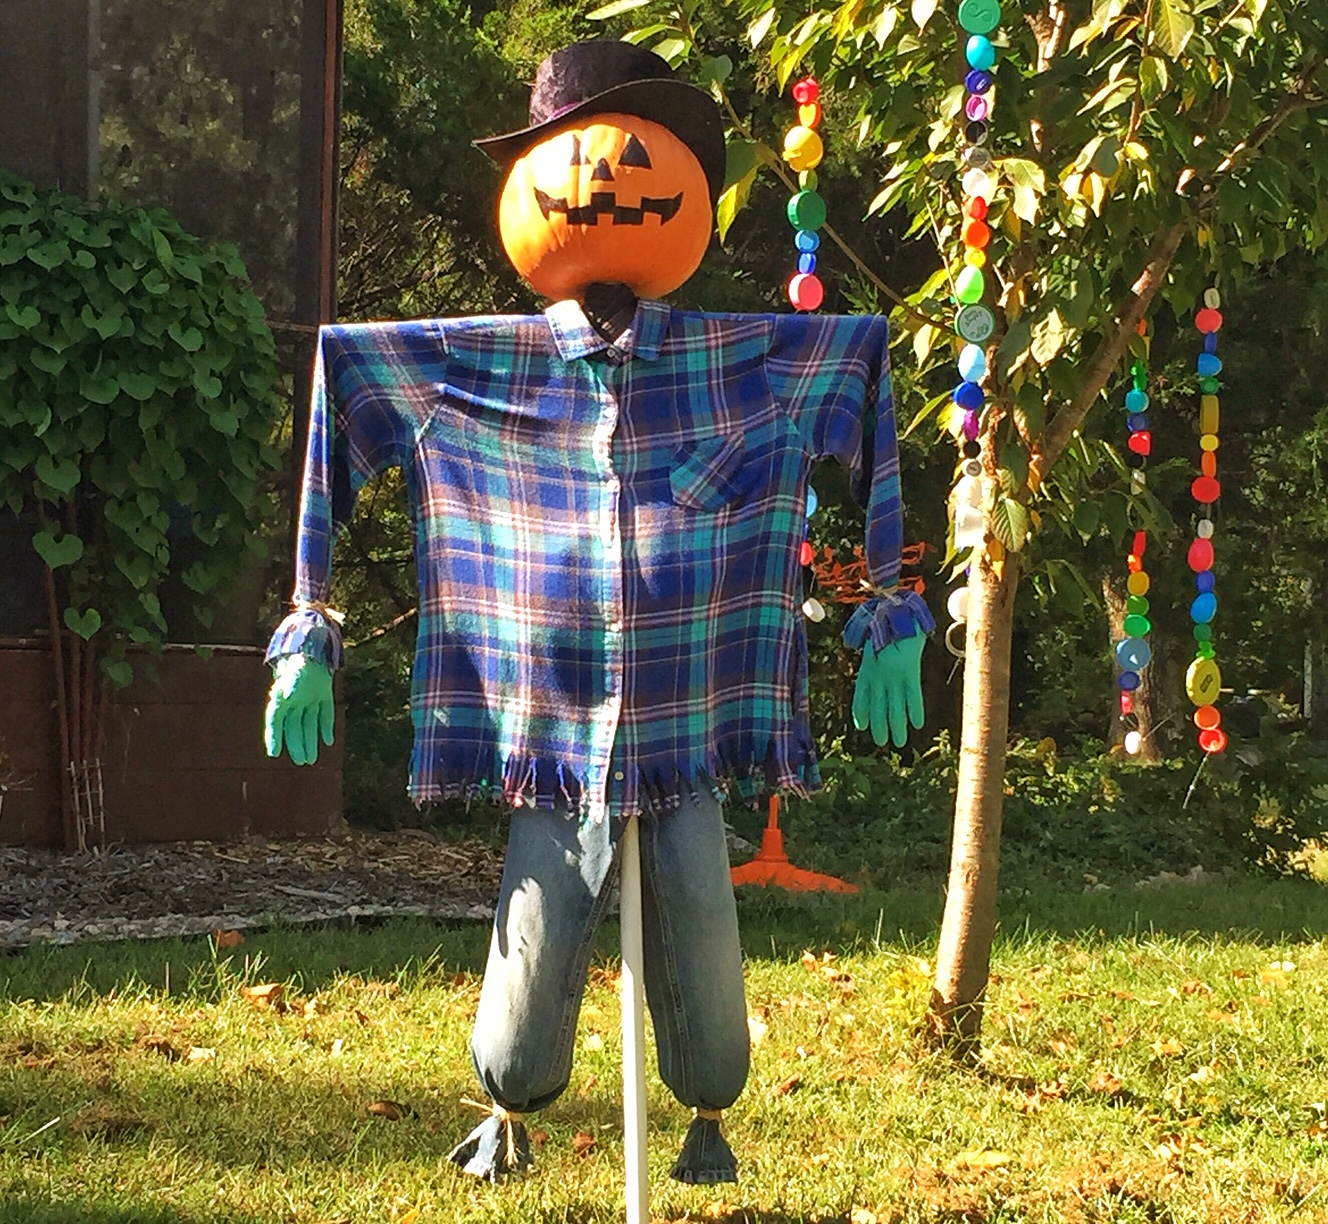 Homemade Halloween scarecrow seen in North Lawrence. (Photo by J. Schafer)